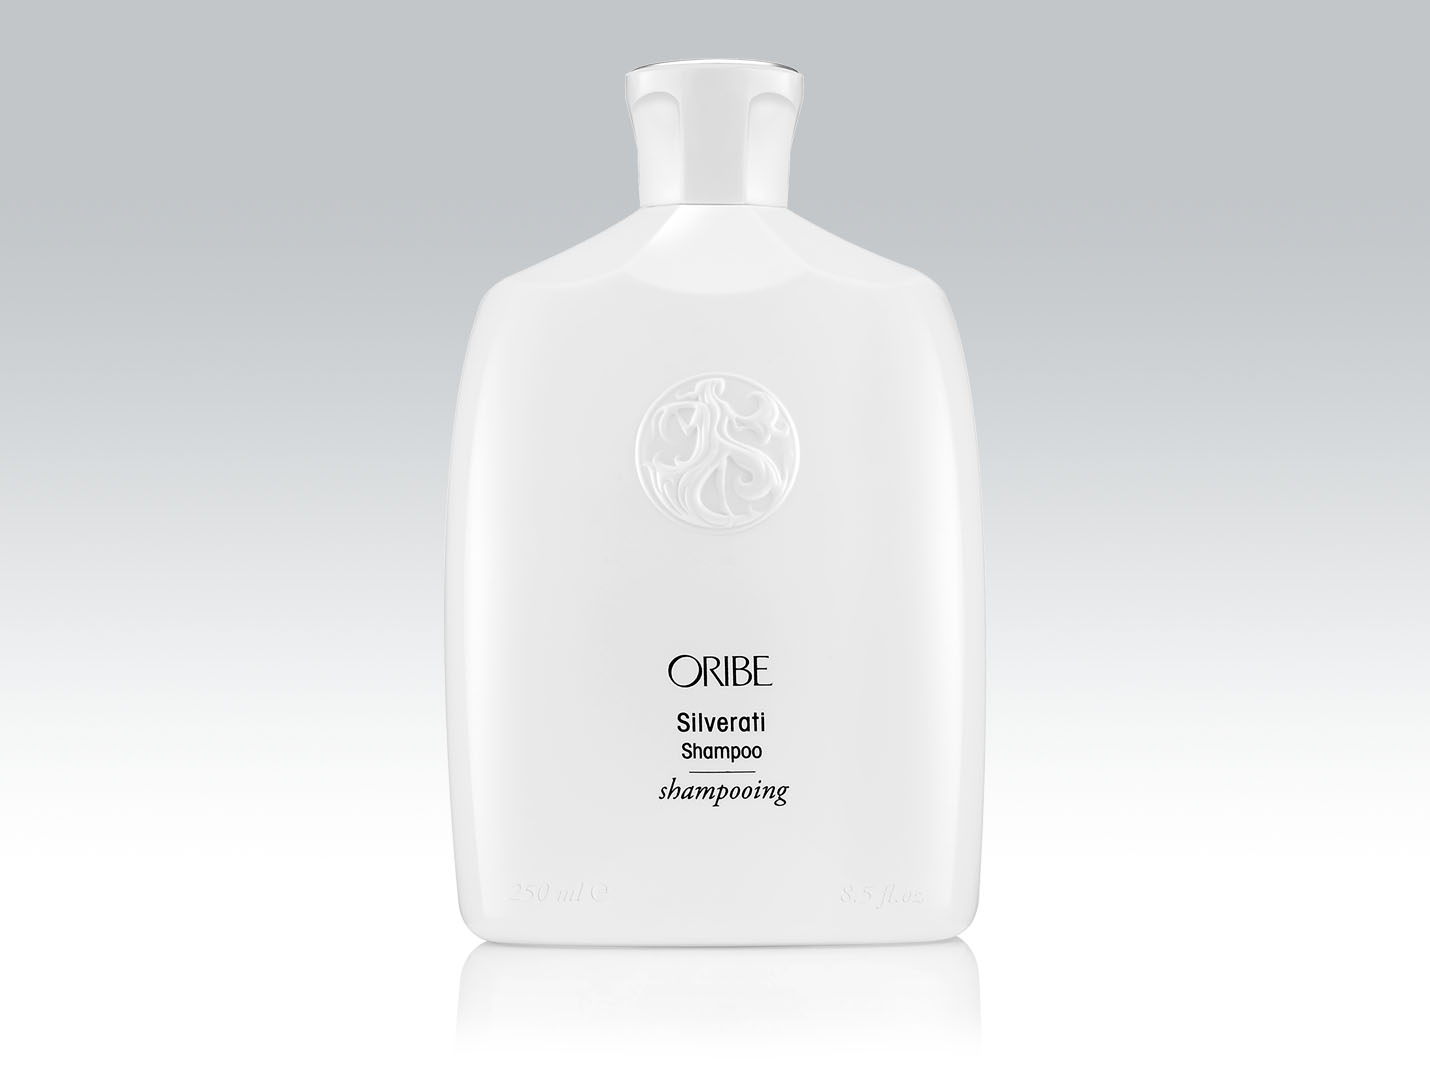 Oribe Silverati shampoo for gray hair